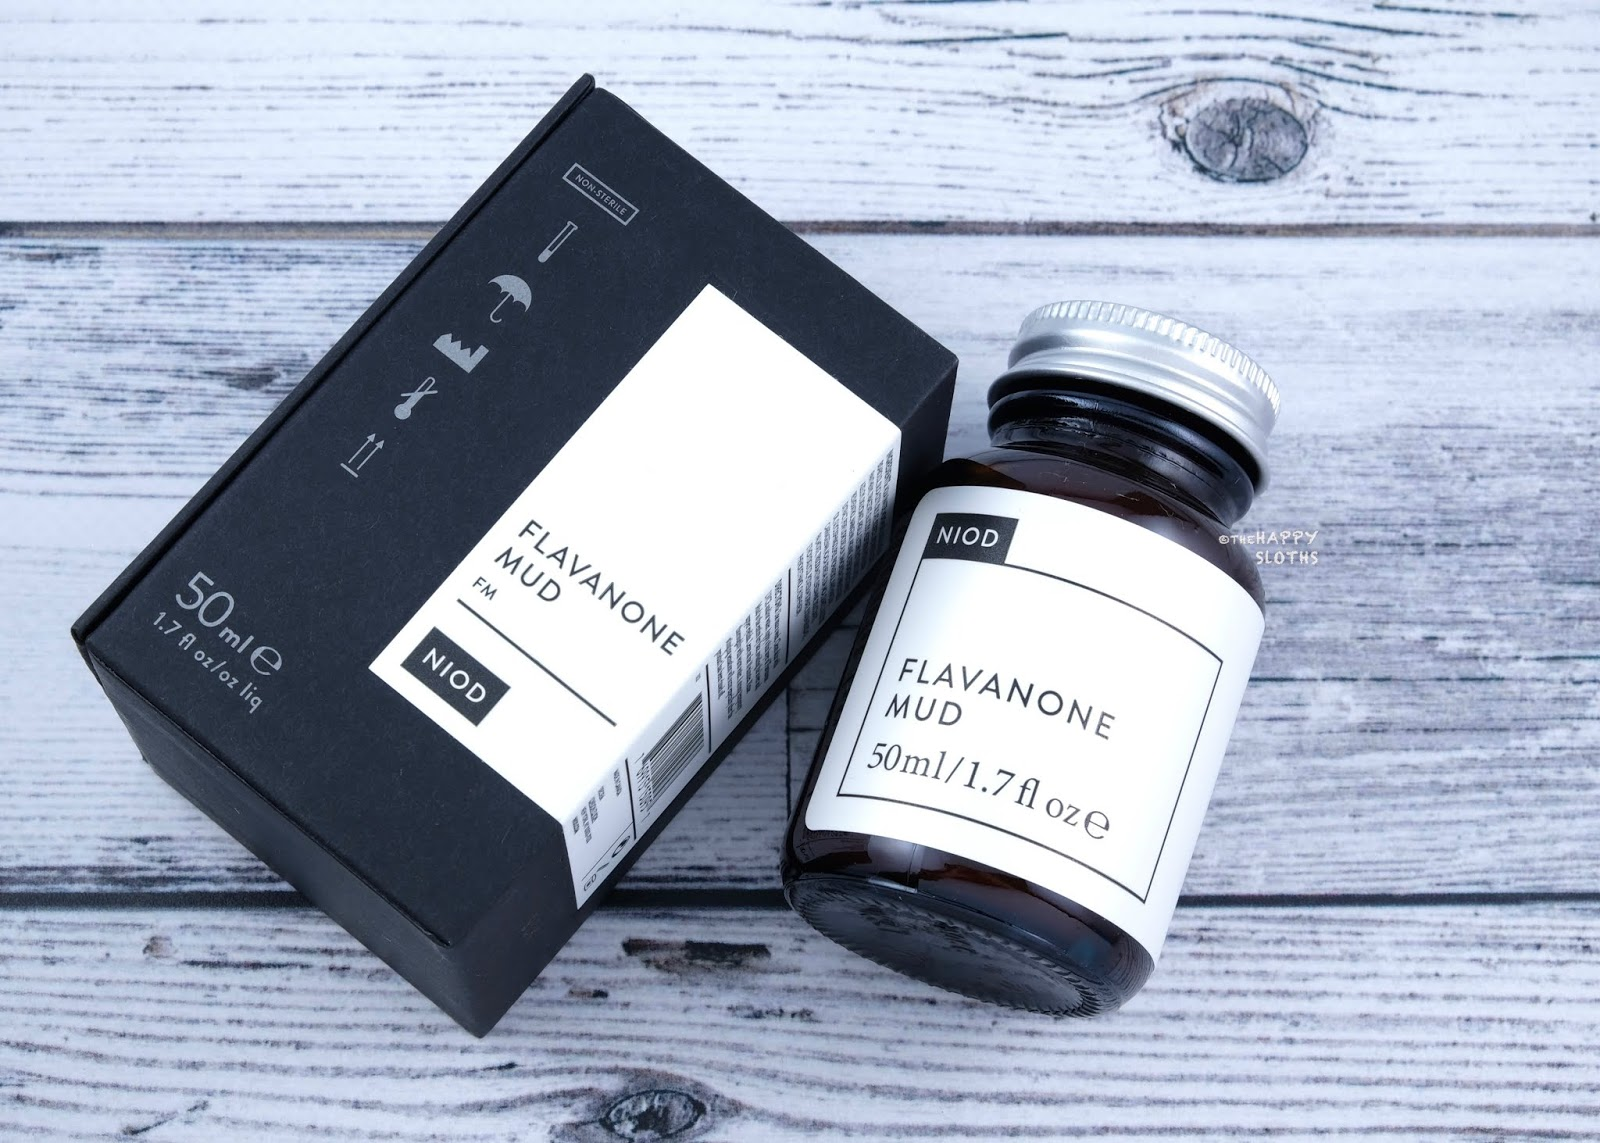 DECIEM | NIOD Flavanone Mud: Review